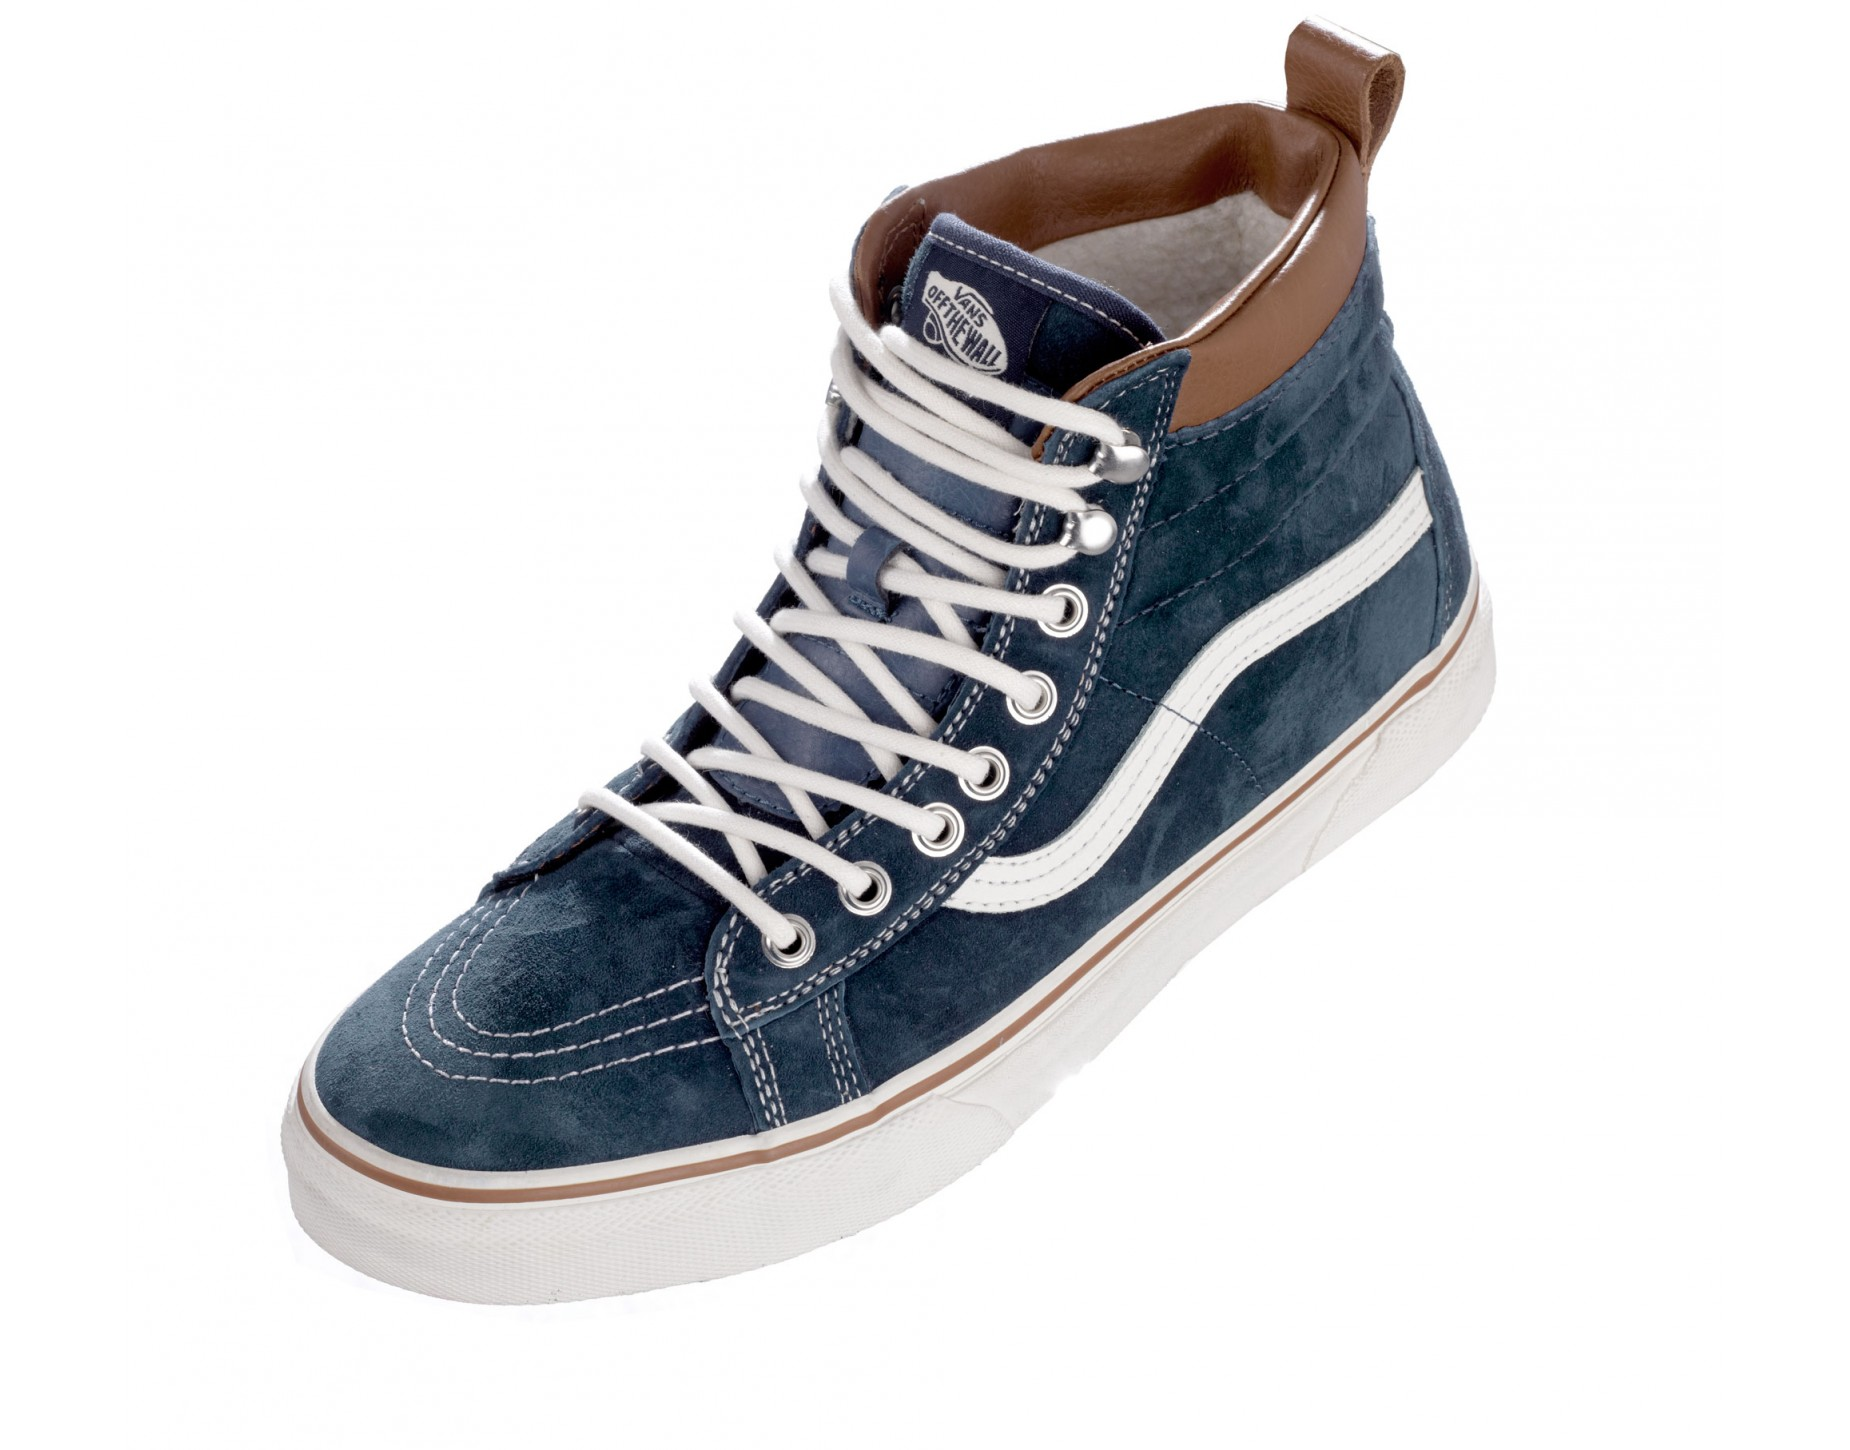 vans sk8 hi mte high cut sneakers scotchgard tm offers at the cycling shop rose bikes. Black Bedroom Furniture Sets. Home Design Ideas